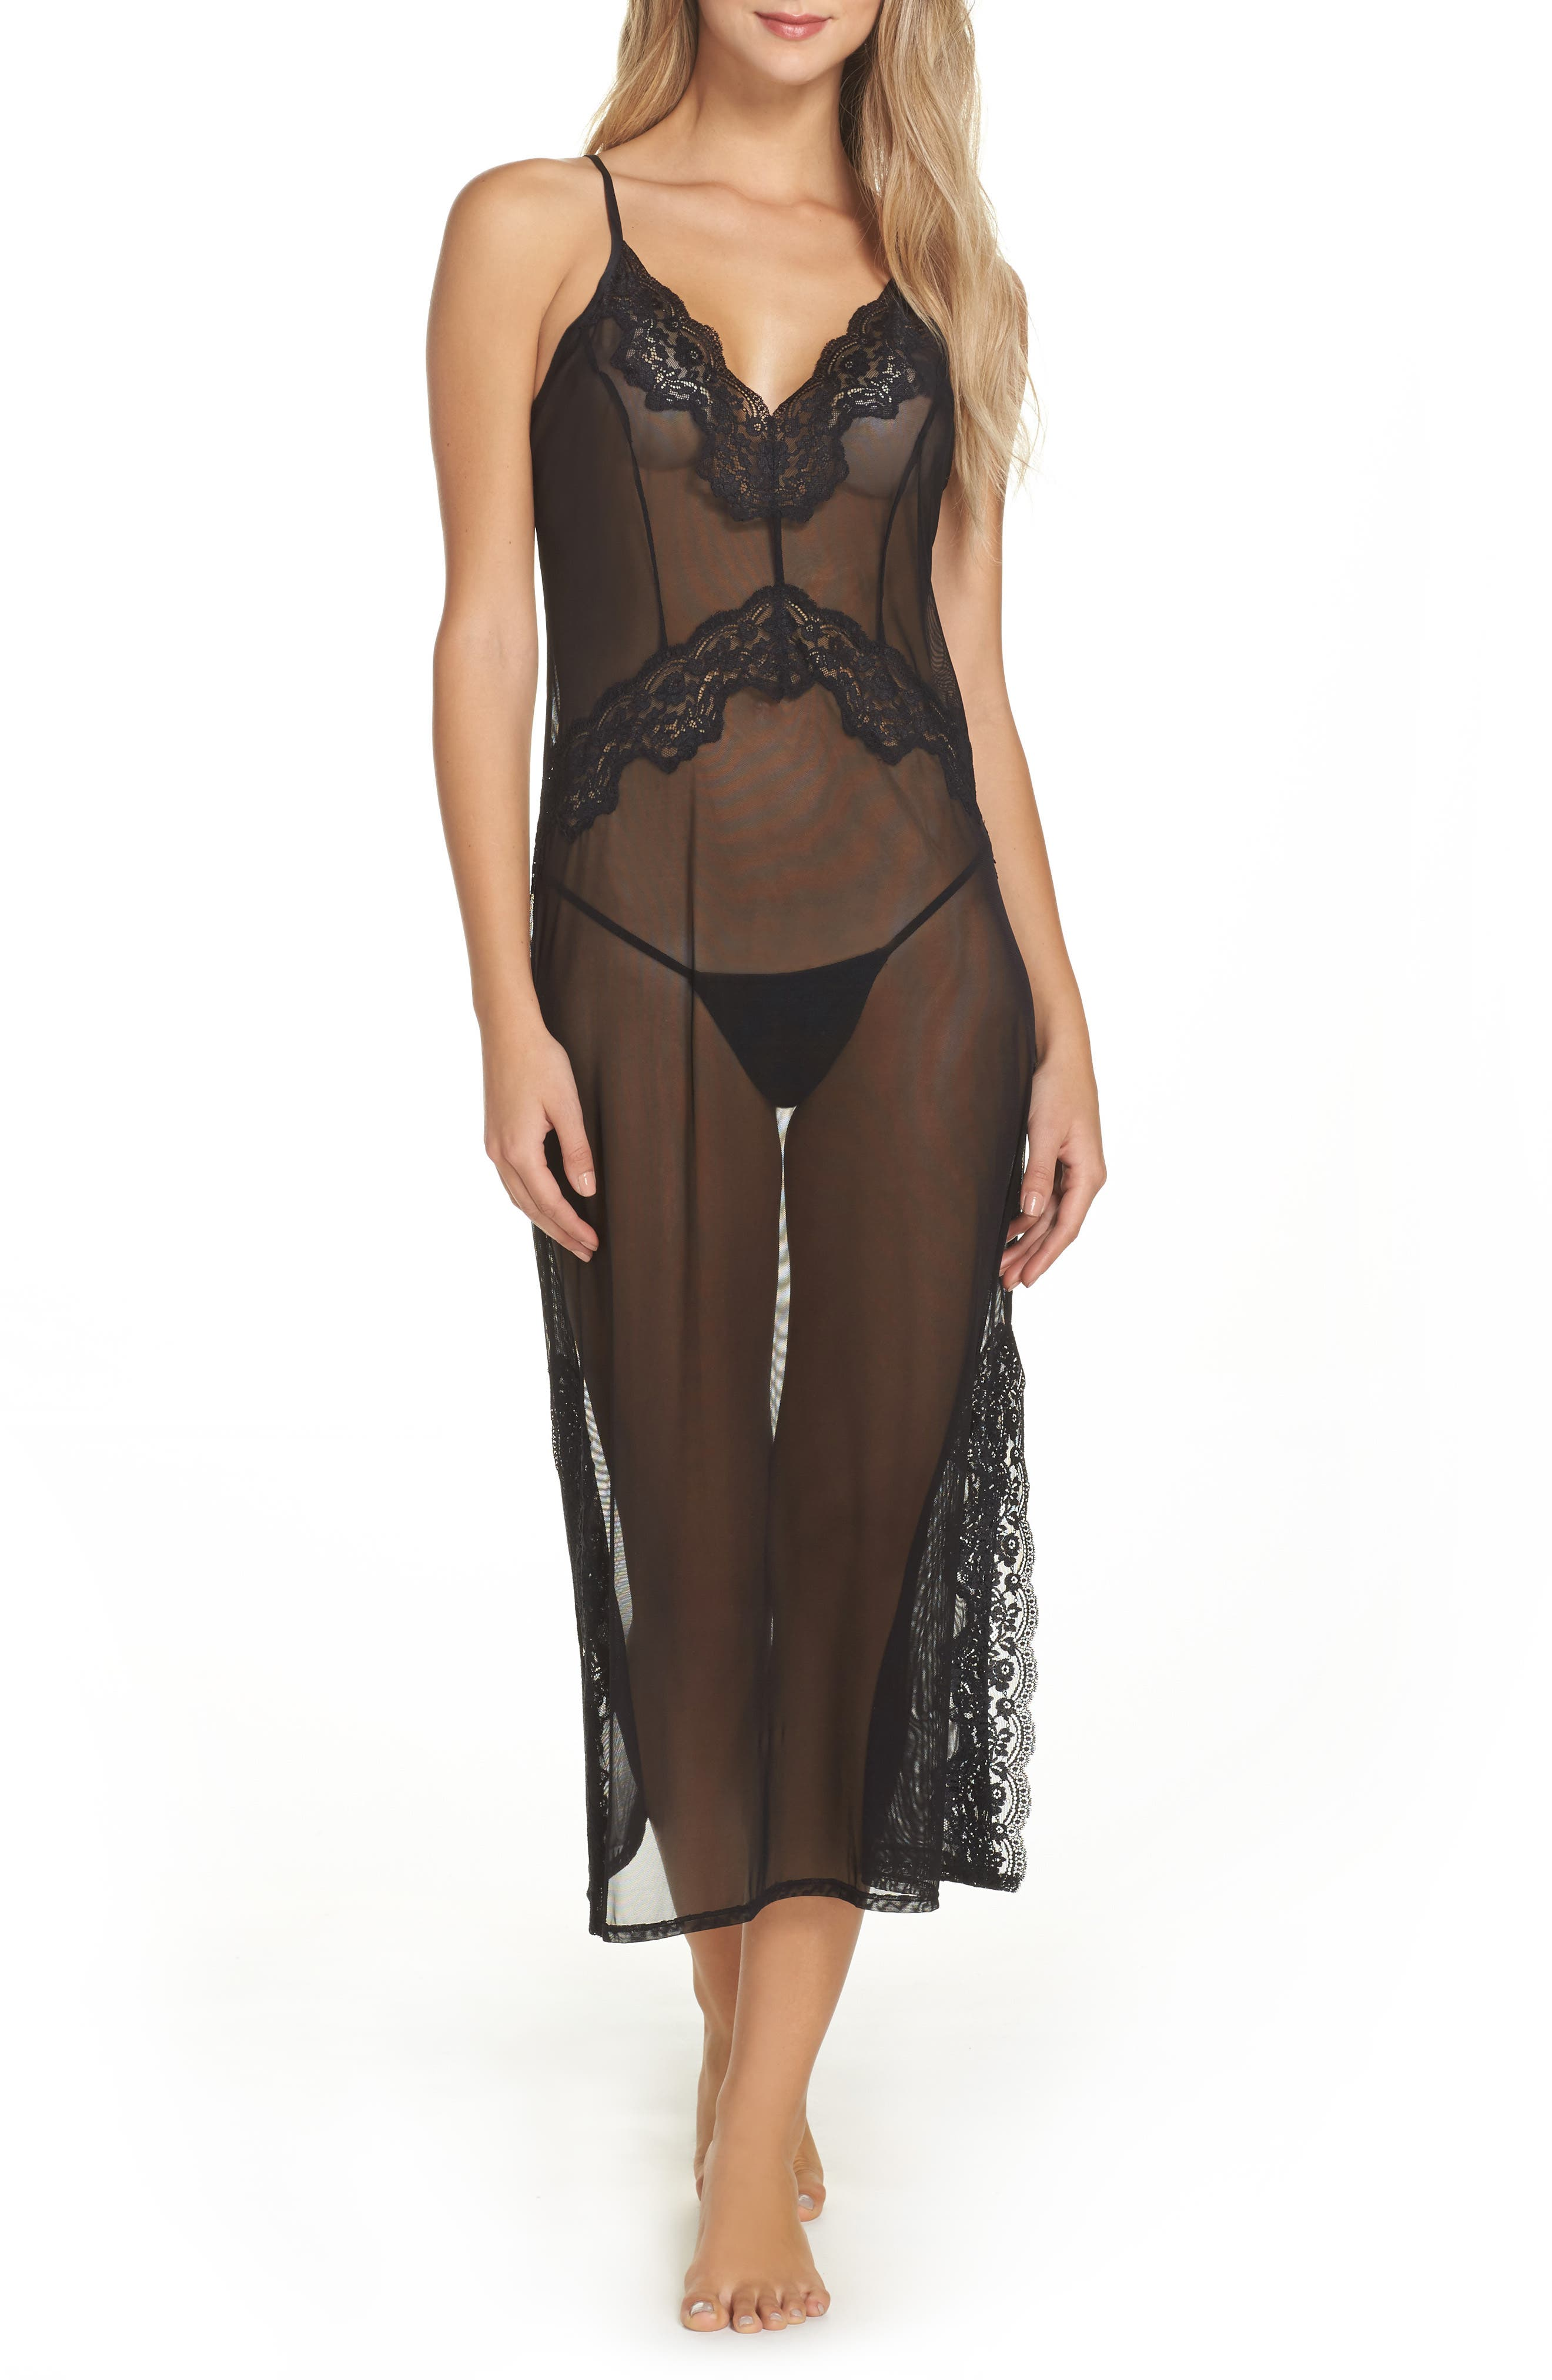 Sheer Love Slip,                         Main,                         color, 001